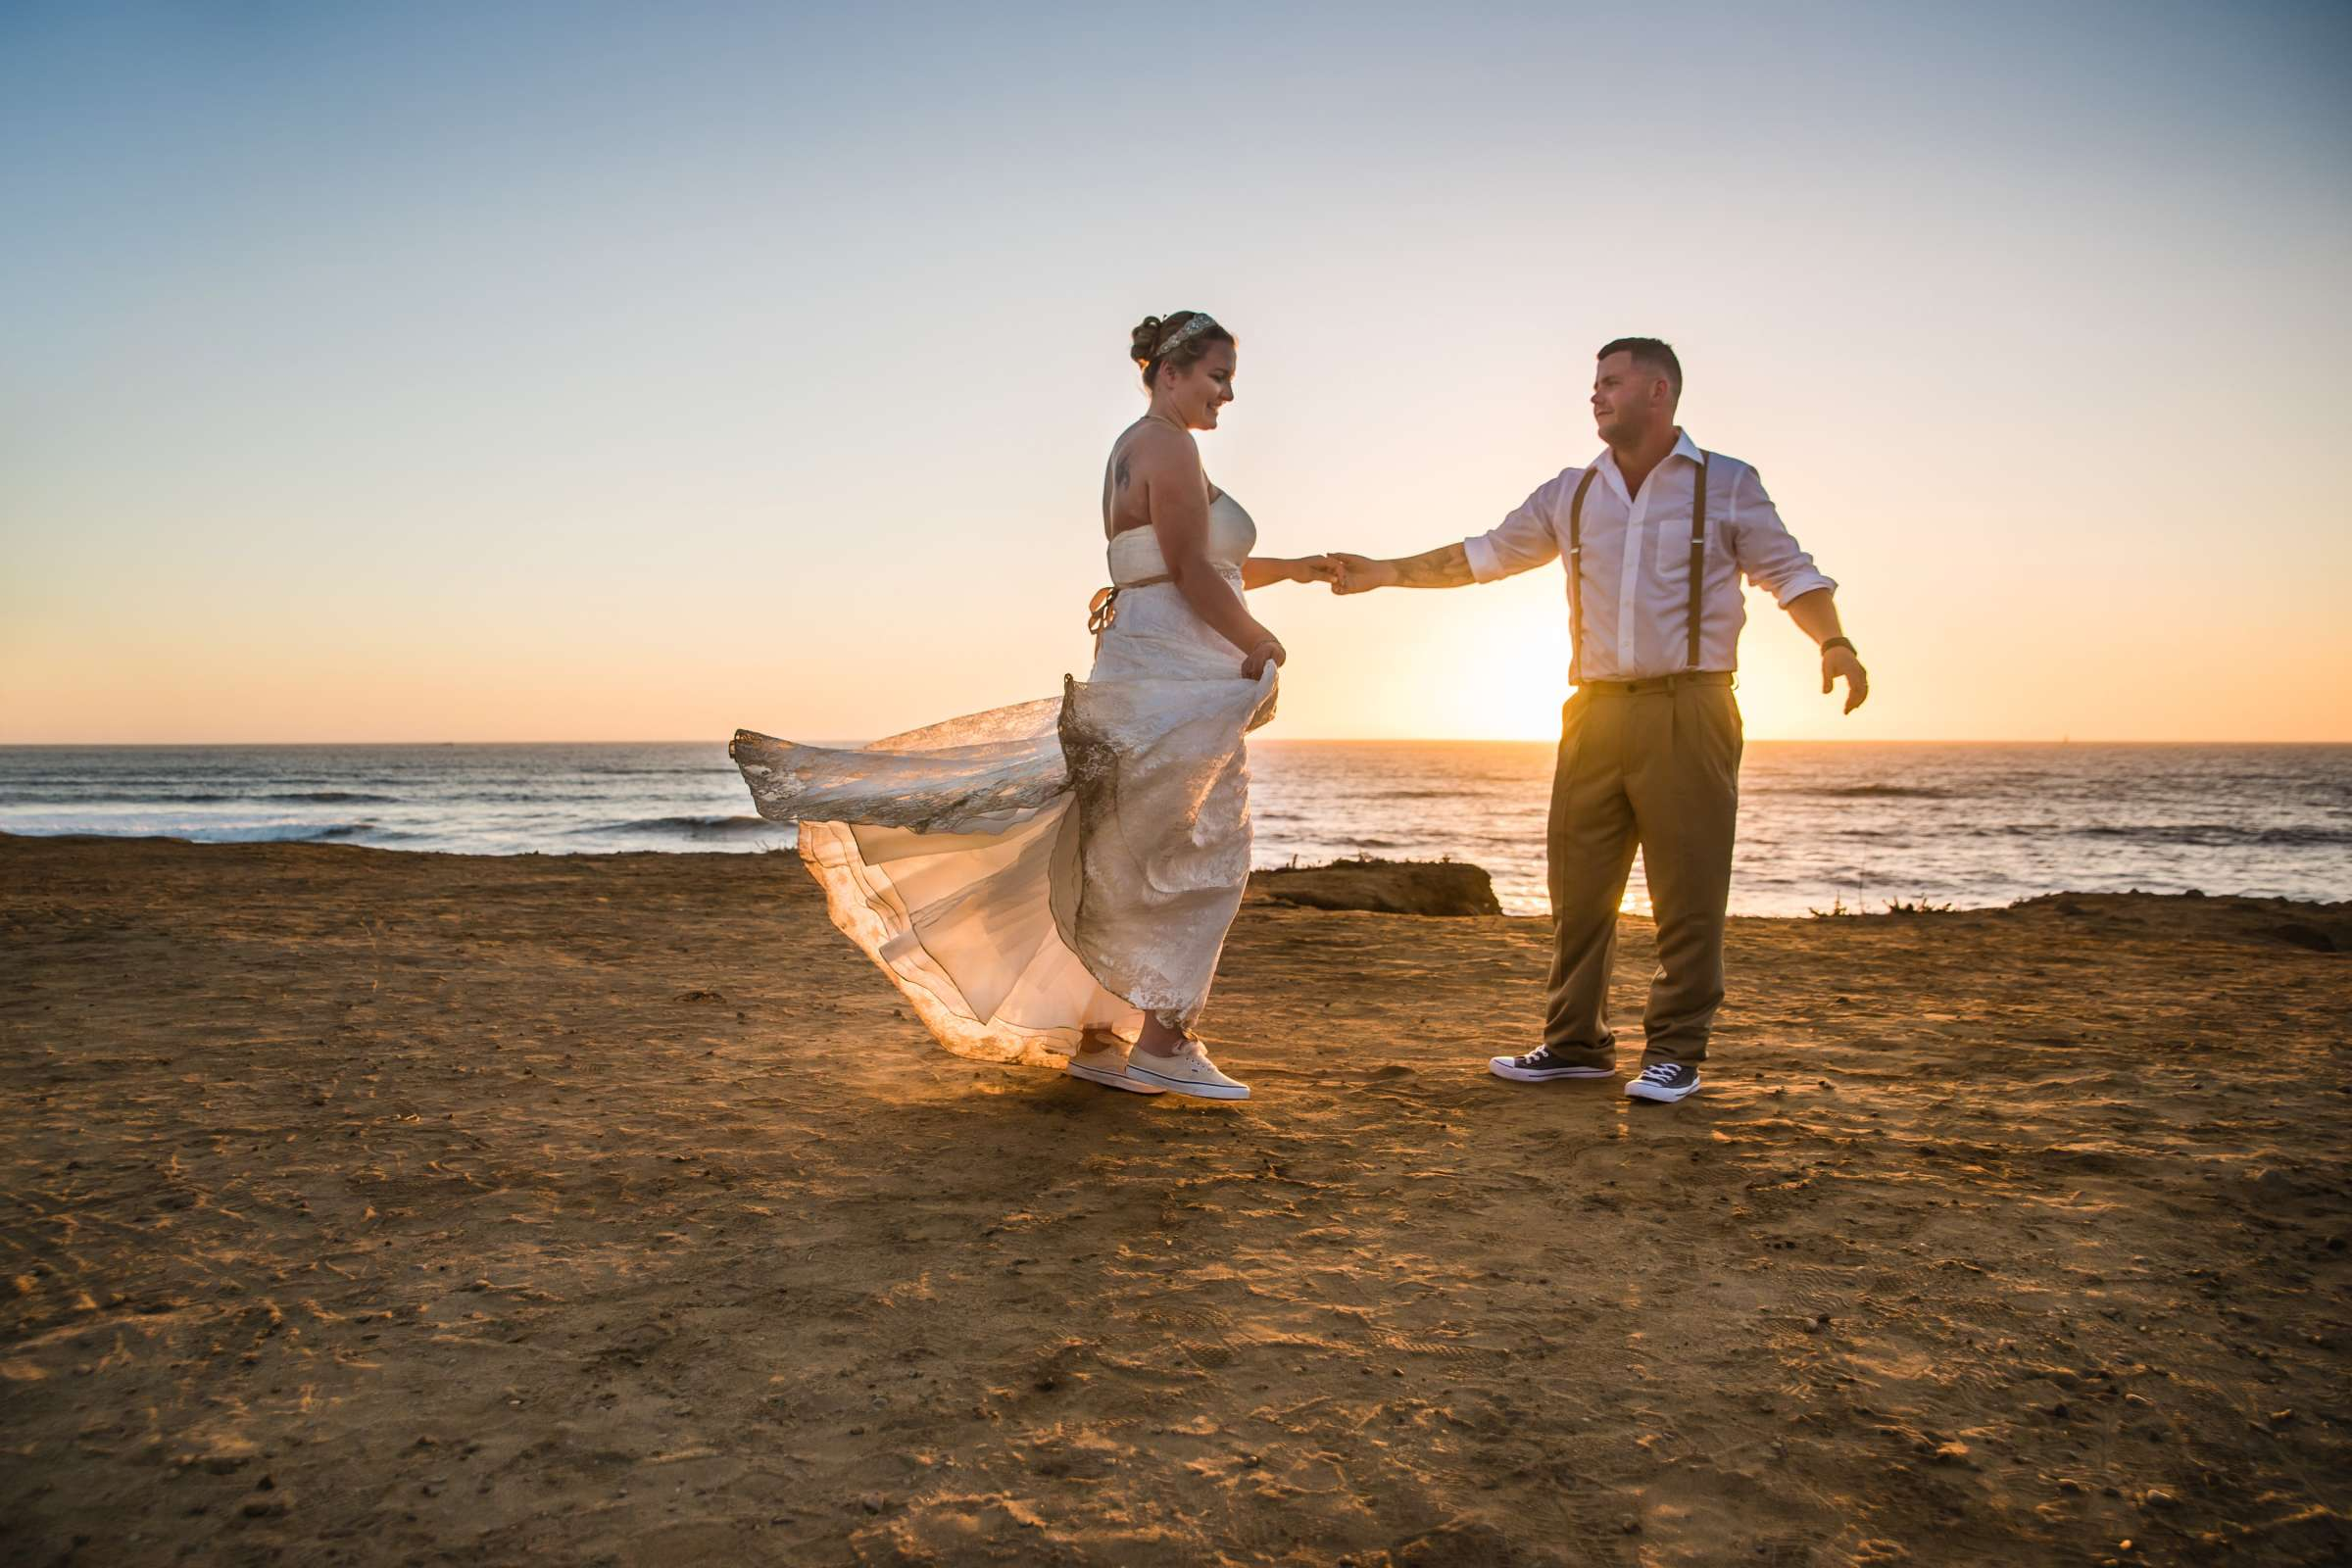 The Inn at Sunset Cliffs Wedding, Melinda and Benjamin Wedding Photo #7 by True Photography